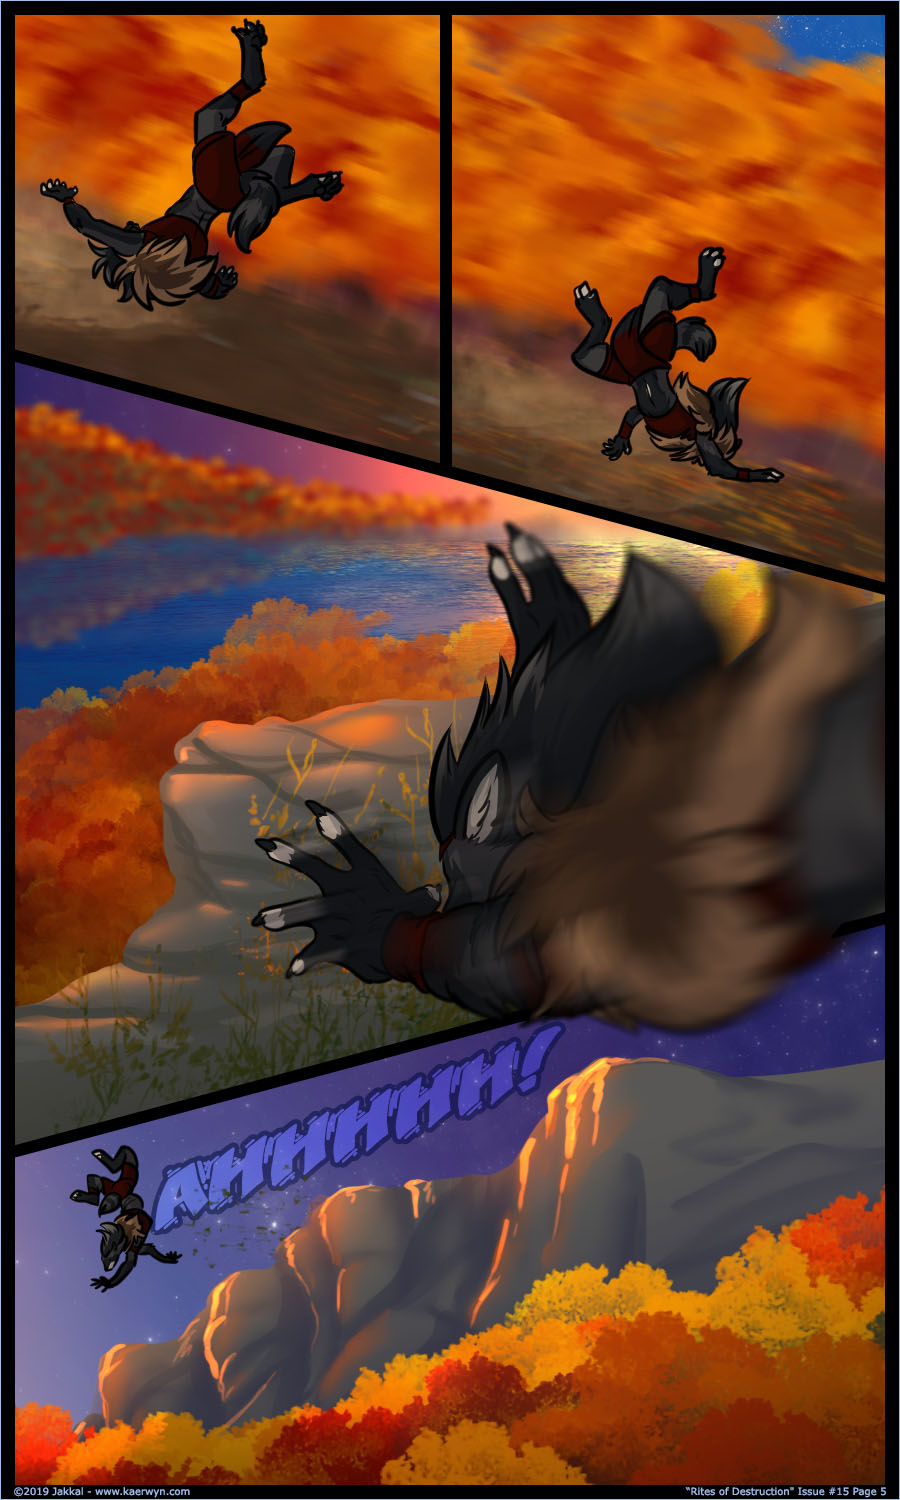 Issue 15 Page 5